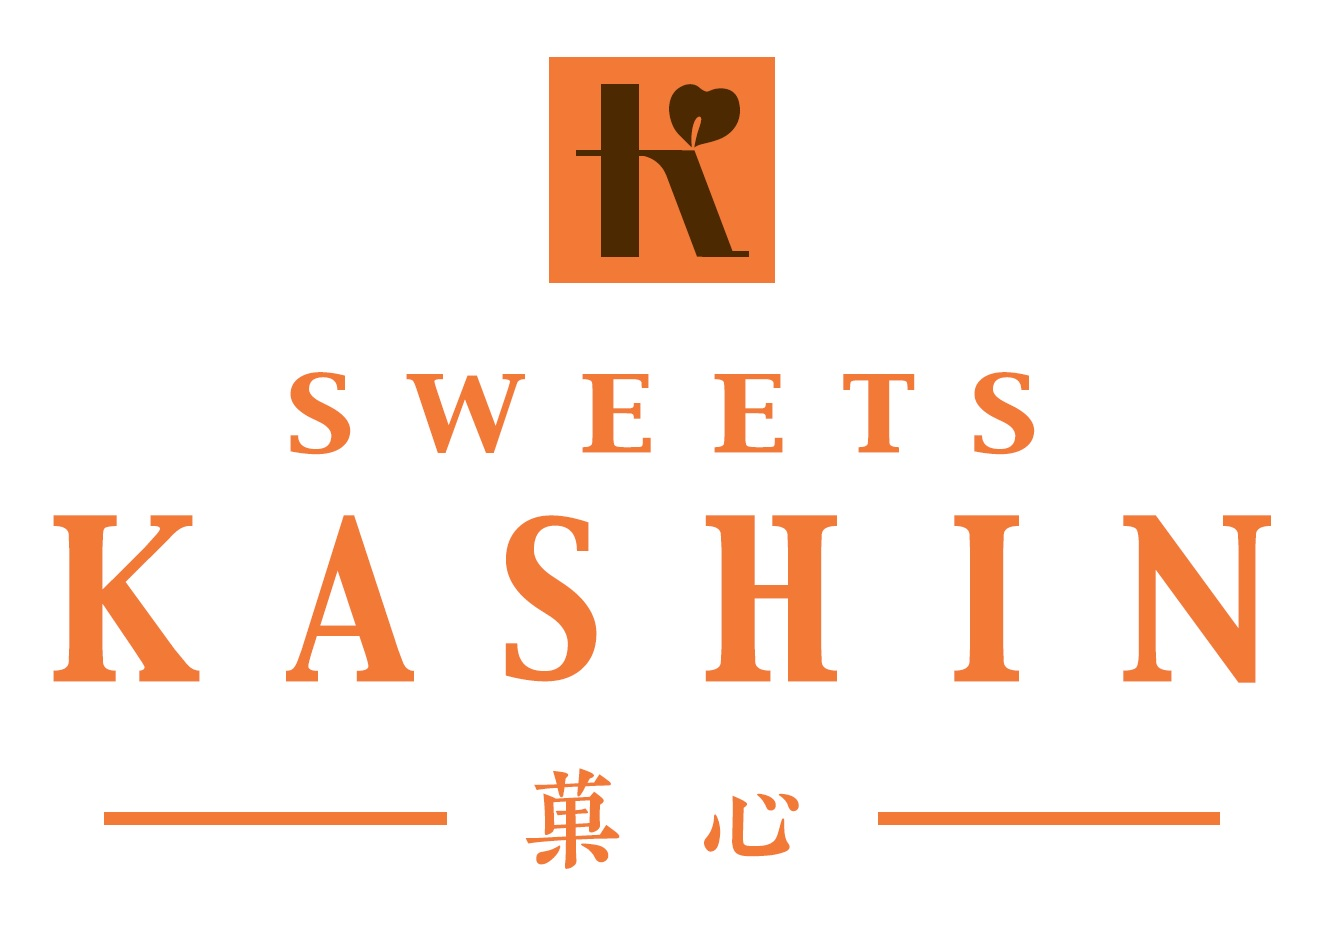 http://SWEETS%20KASINロゴ